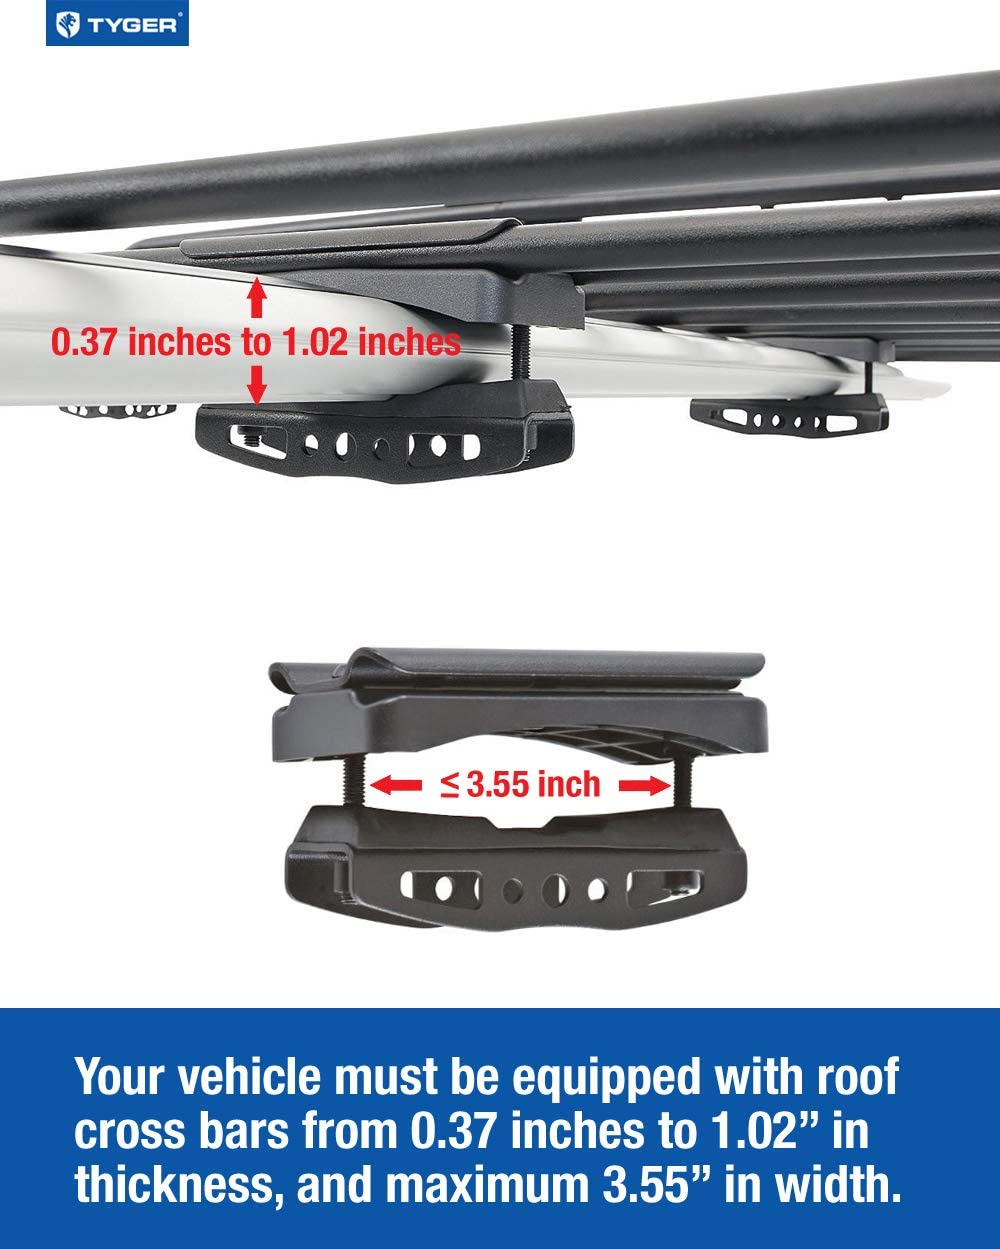 L57.5 x W42 x H6 Tyger Auto TG-RK1B942B Heavy Duty Mounted Cargo Basket Rack with Wind Fairing Roof Top Luggage Carrier